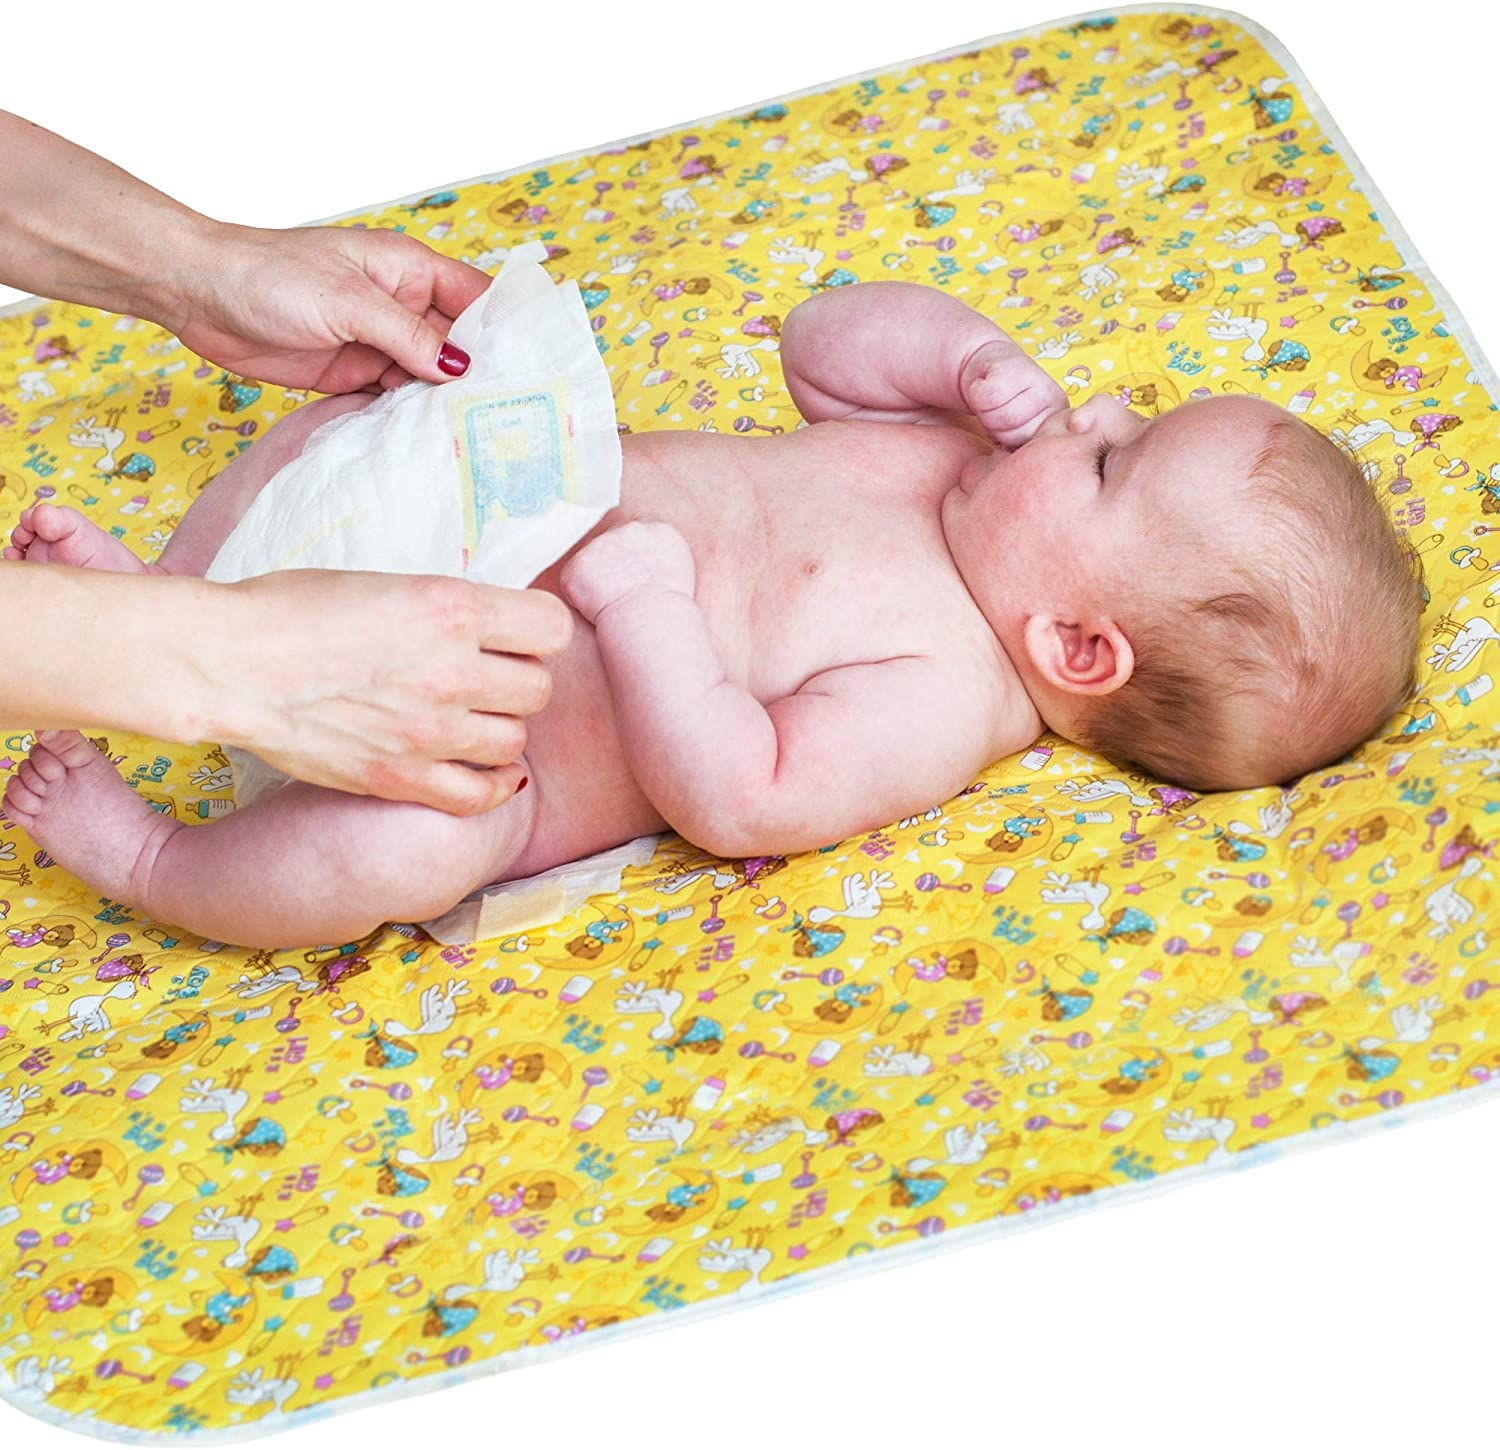 1pc Changing Pad Waterproof Diaper Changing Mat Non-Slip Waterproof and Washable for Baby Infant